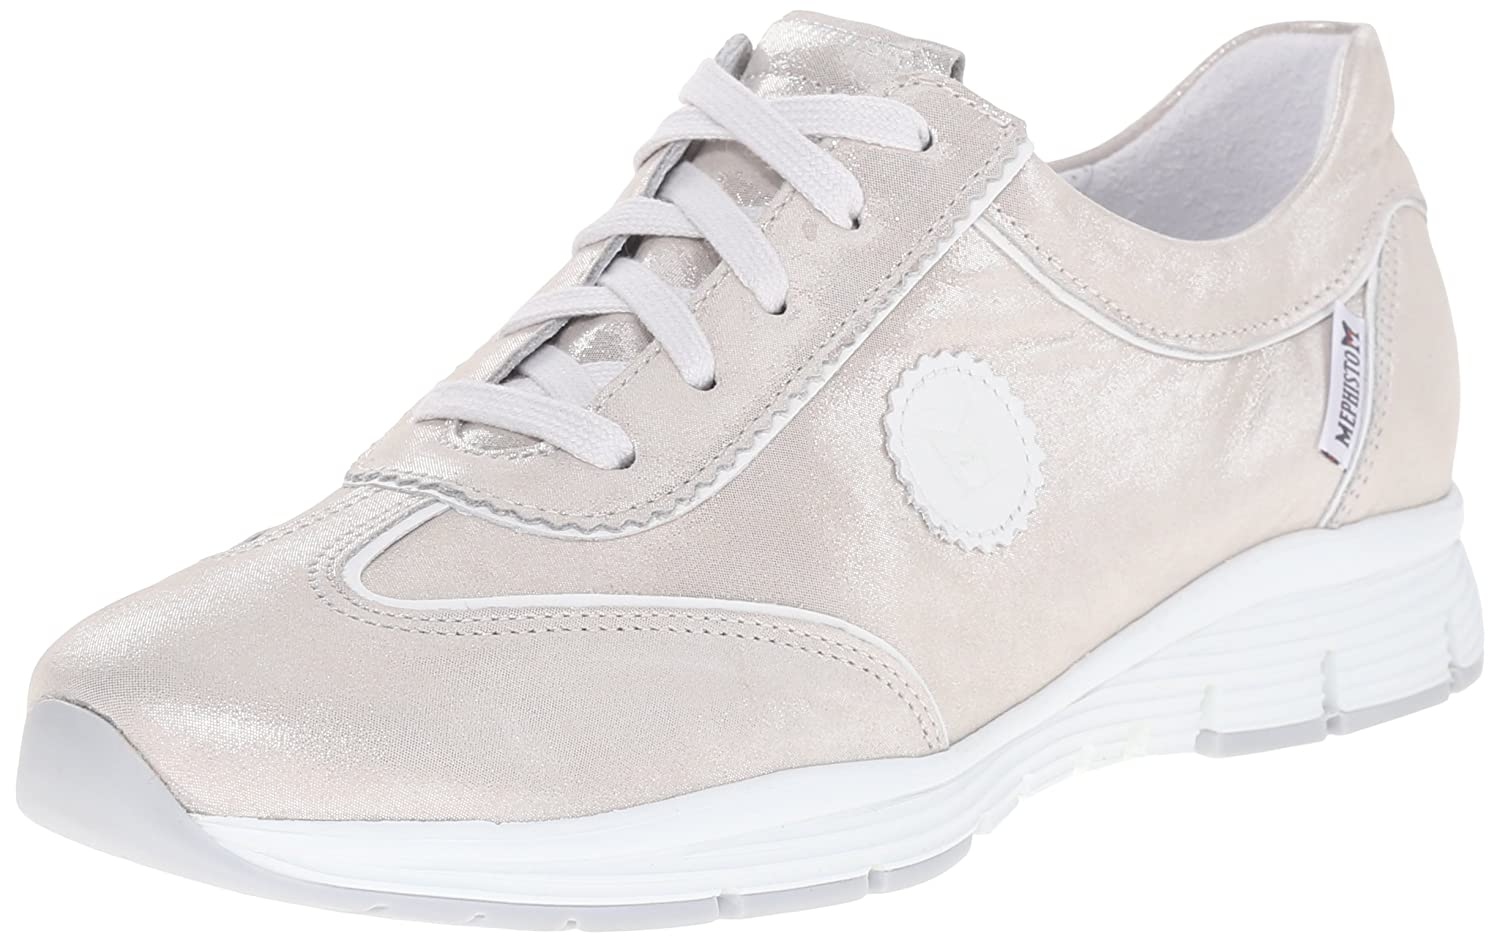 Mephisto Women's Yael Oxford B011DHWQBE 9.5 B(M) US|Light Grey Liz/White Smooth